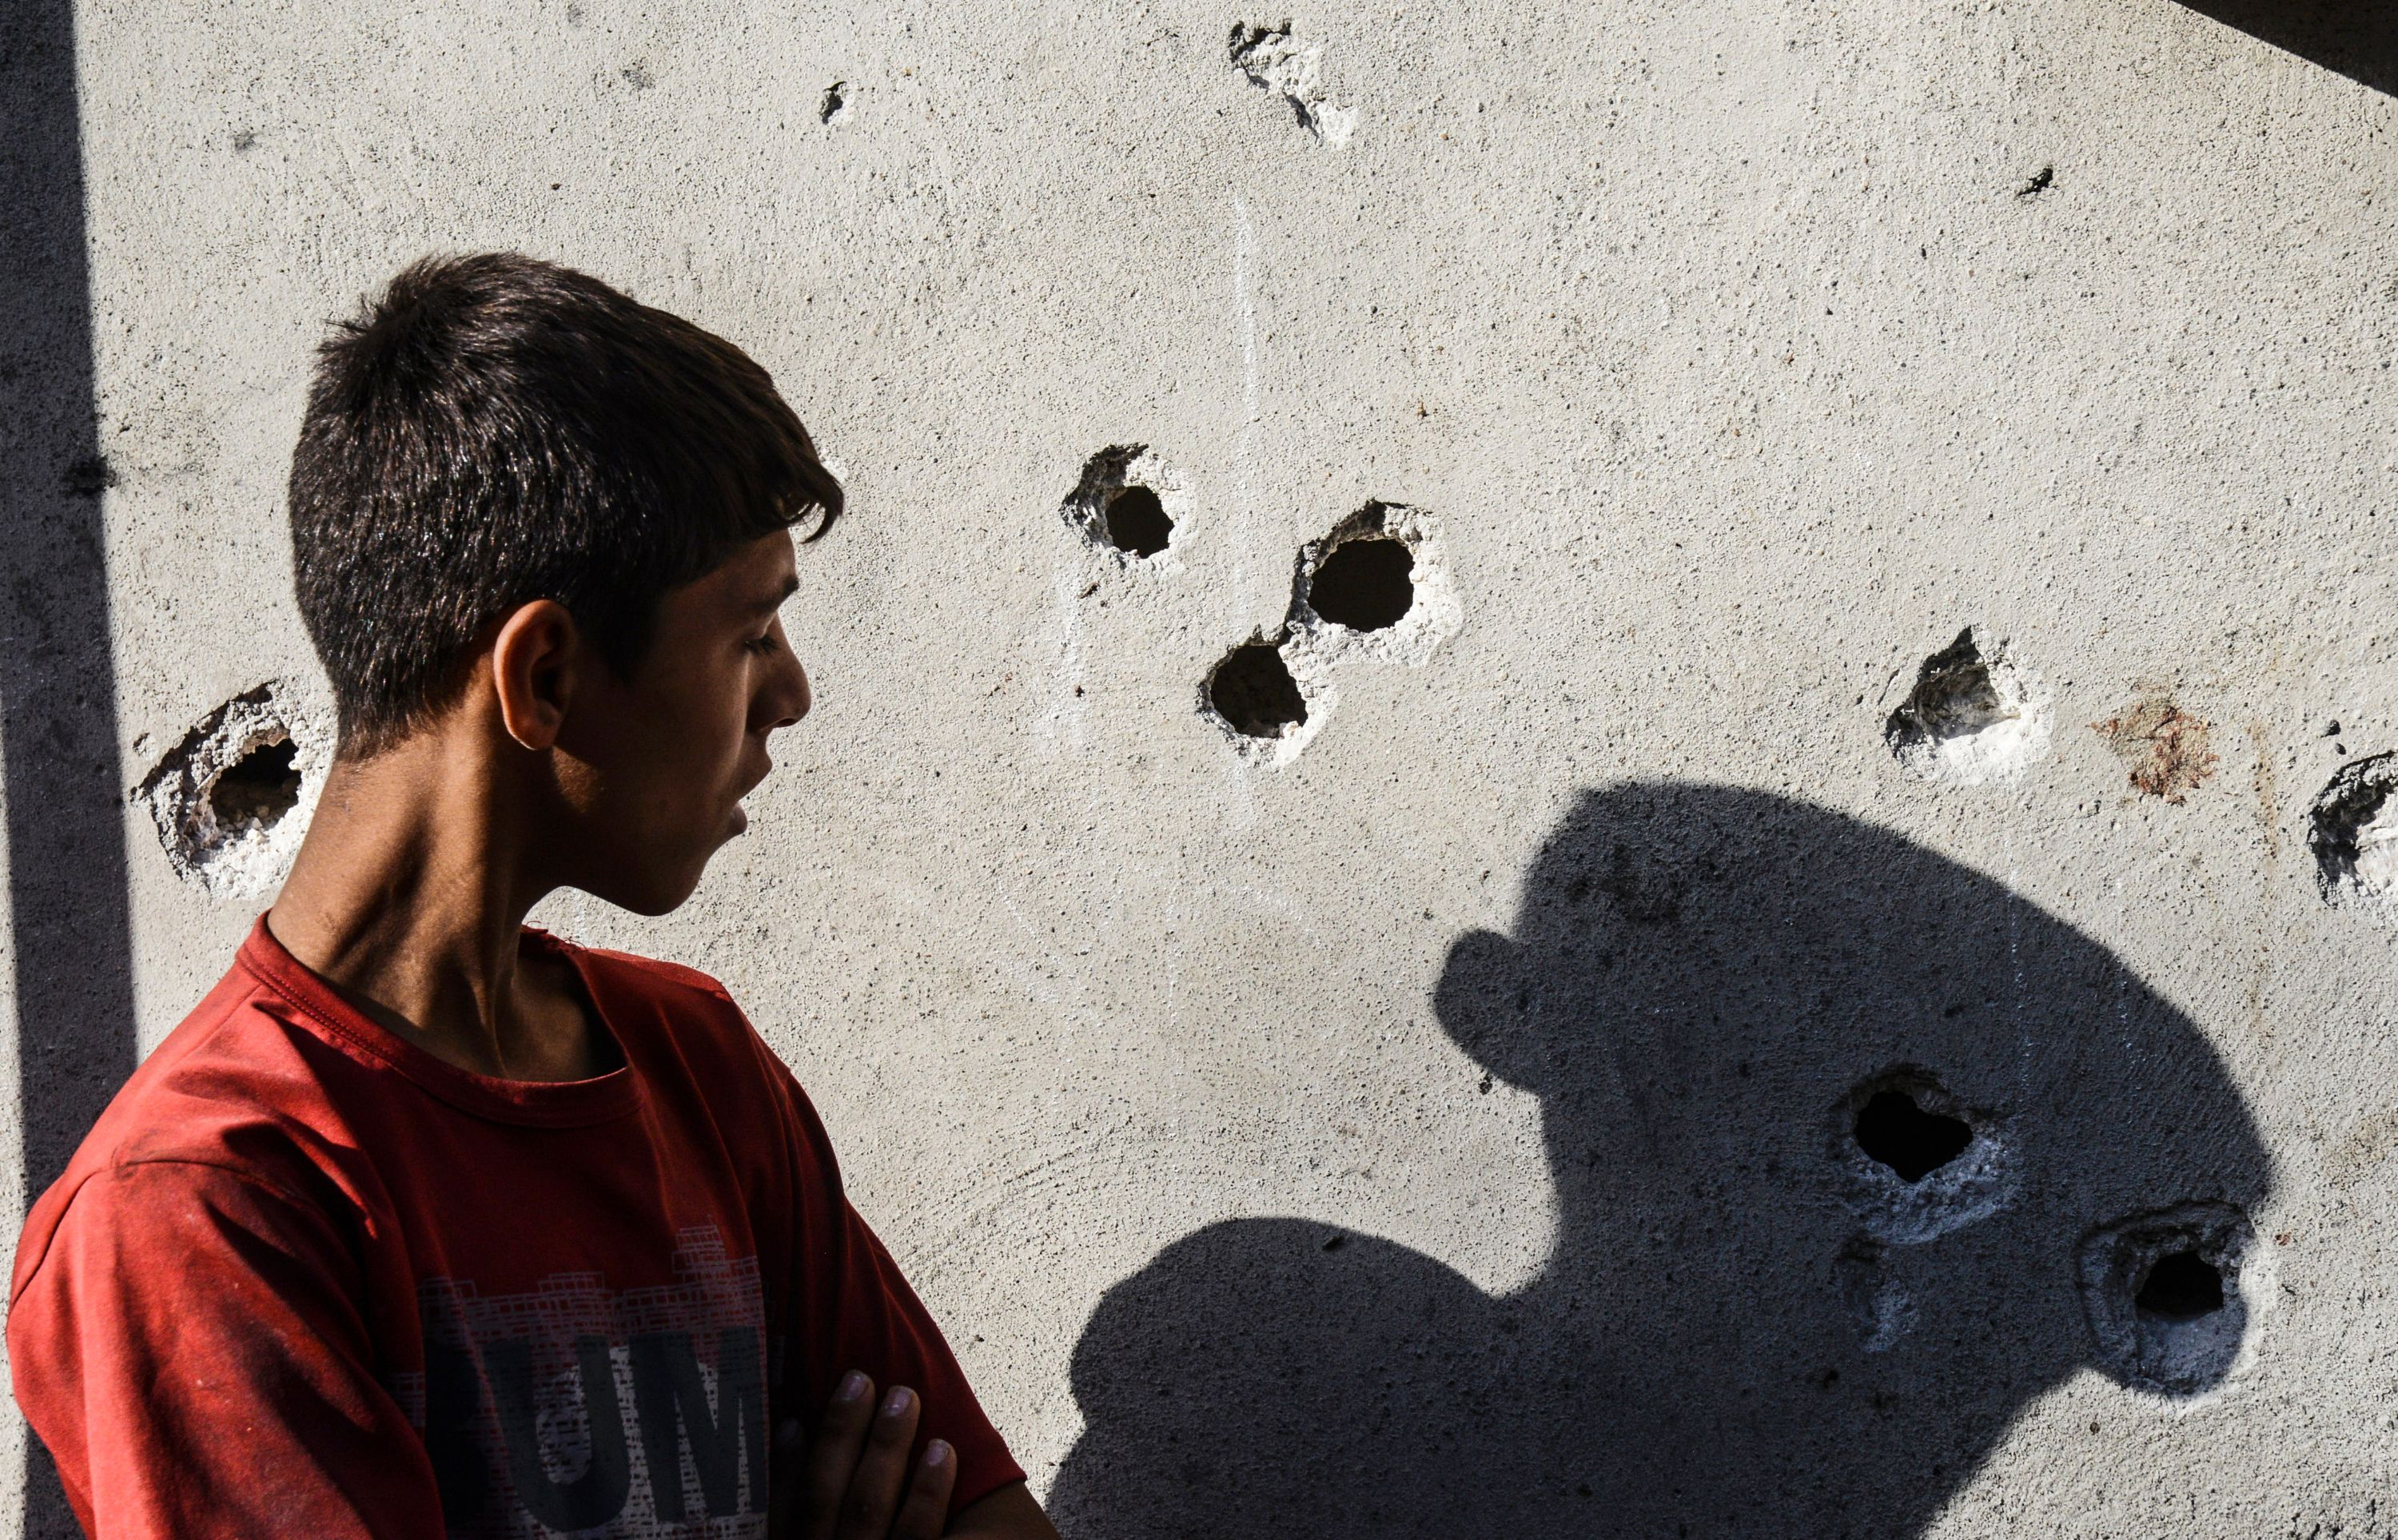 """A boy stands near impacts of projectile on a wall near the explosion scene in Gaziantep in southeastern Turkey near the Syrian border on August 21, 2016. Turkish President Recep Tayyip Erdogan on Sunday said the Islamic State (IS) group was the """"likely perpetrator"""" of the bomb attack."""